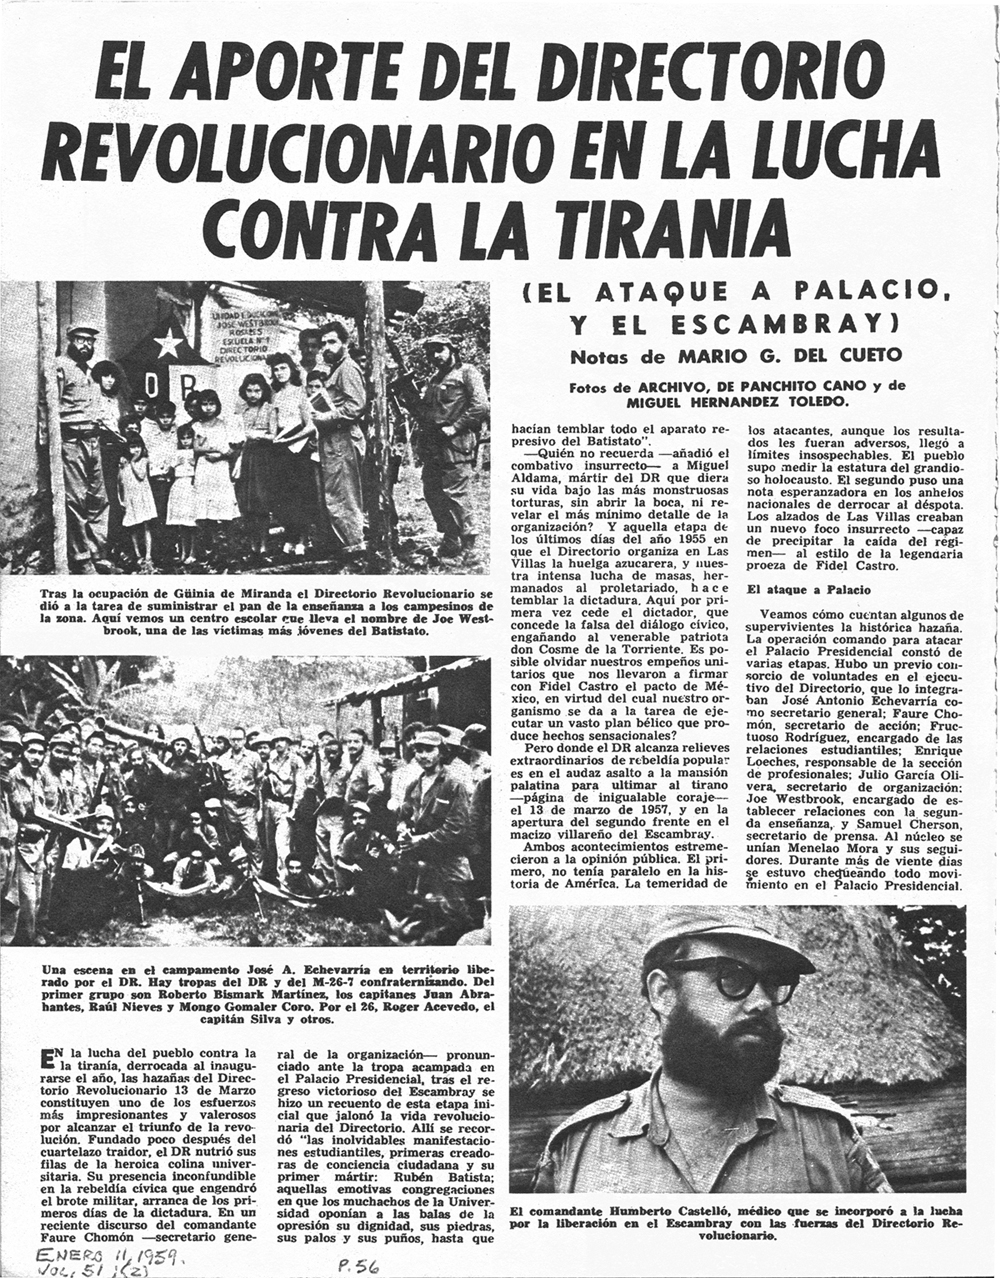 cuban revolution 4 essay Fidel castro and the cuban revolution after fulgencio batista and zaldivar seized control of the cuban government in 1952, fidel castro became a leader of an underground anti-government fraction a year later he was jailed for having led the 26th uprising against batista in 1955 he was released.